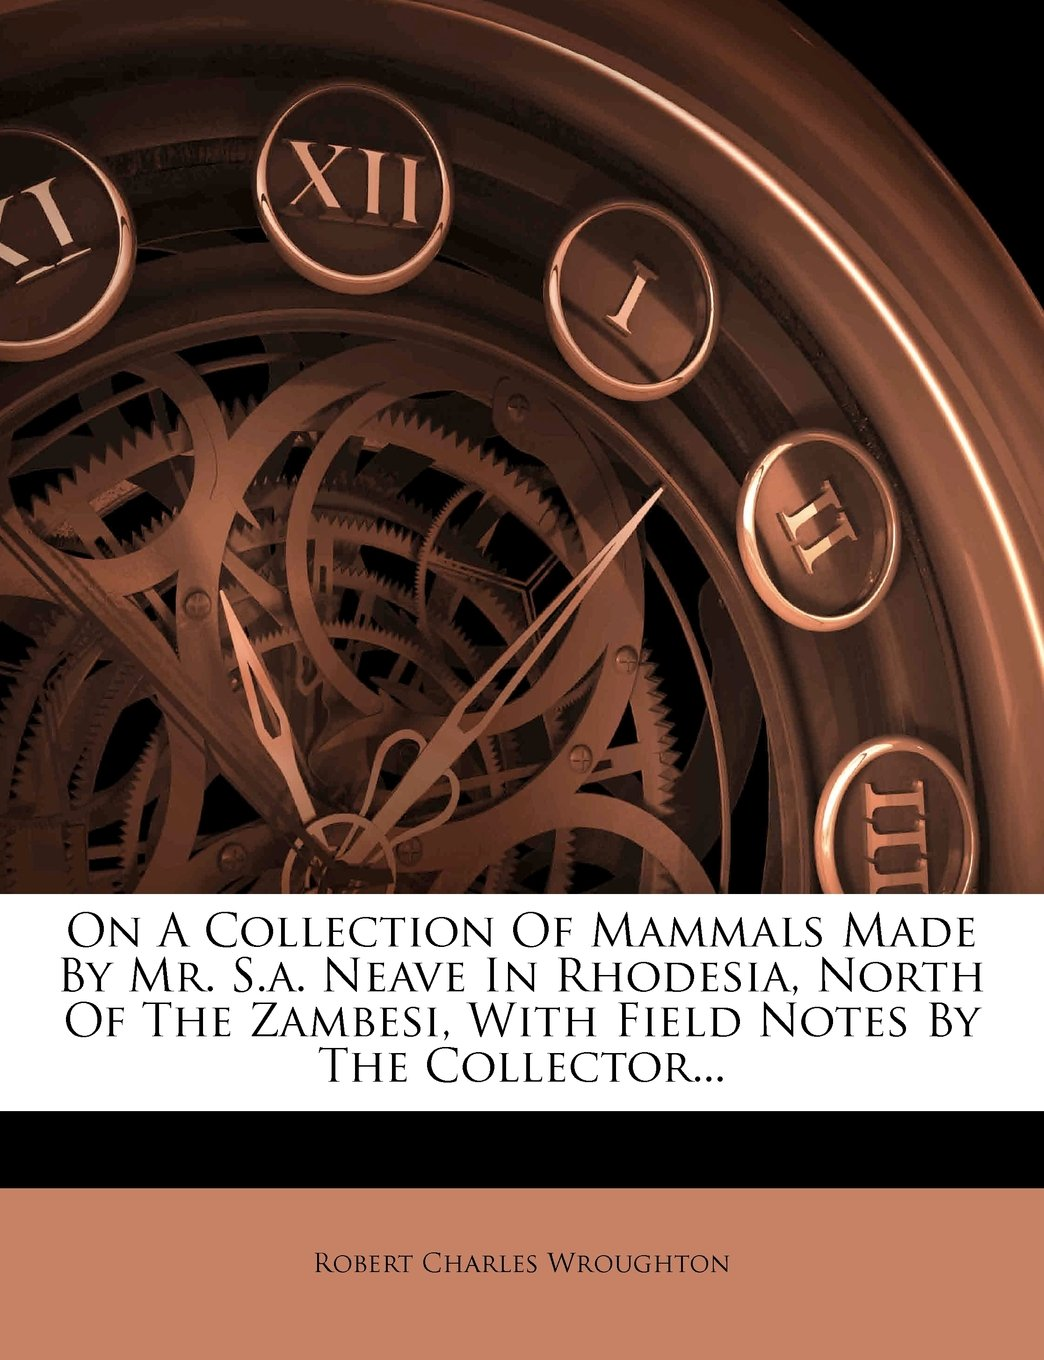 On A Collection Of Mammals Made By Mr. S.a. Neave In Rhodesia, North Of The Zambesi, With Field Notes By The Collector... pdf epub